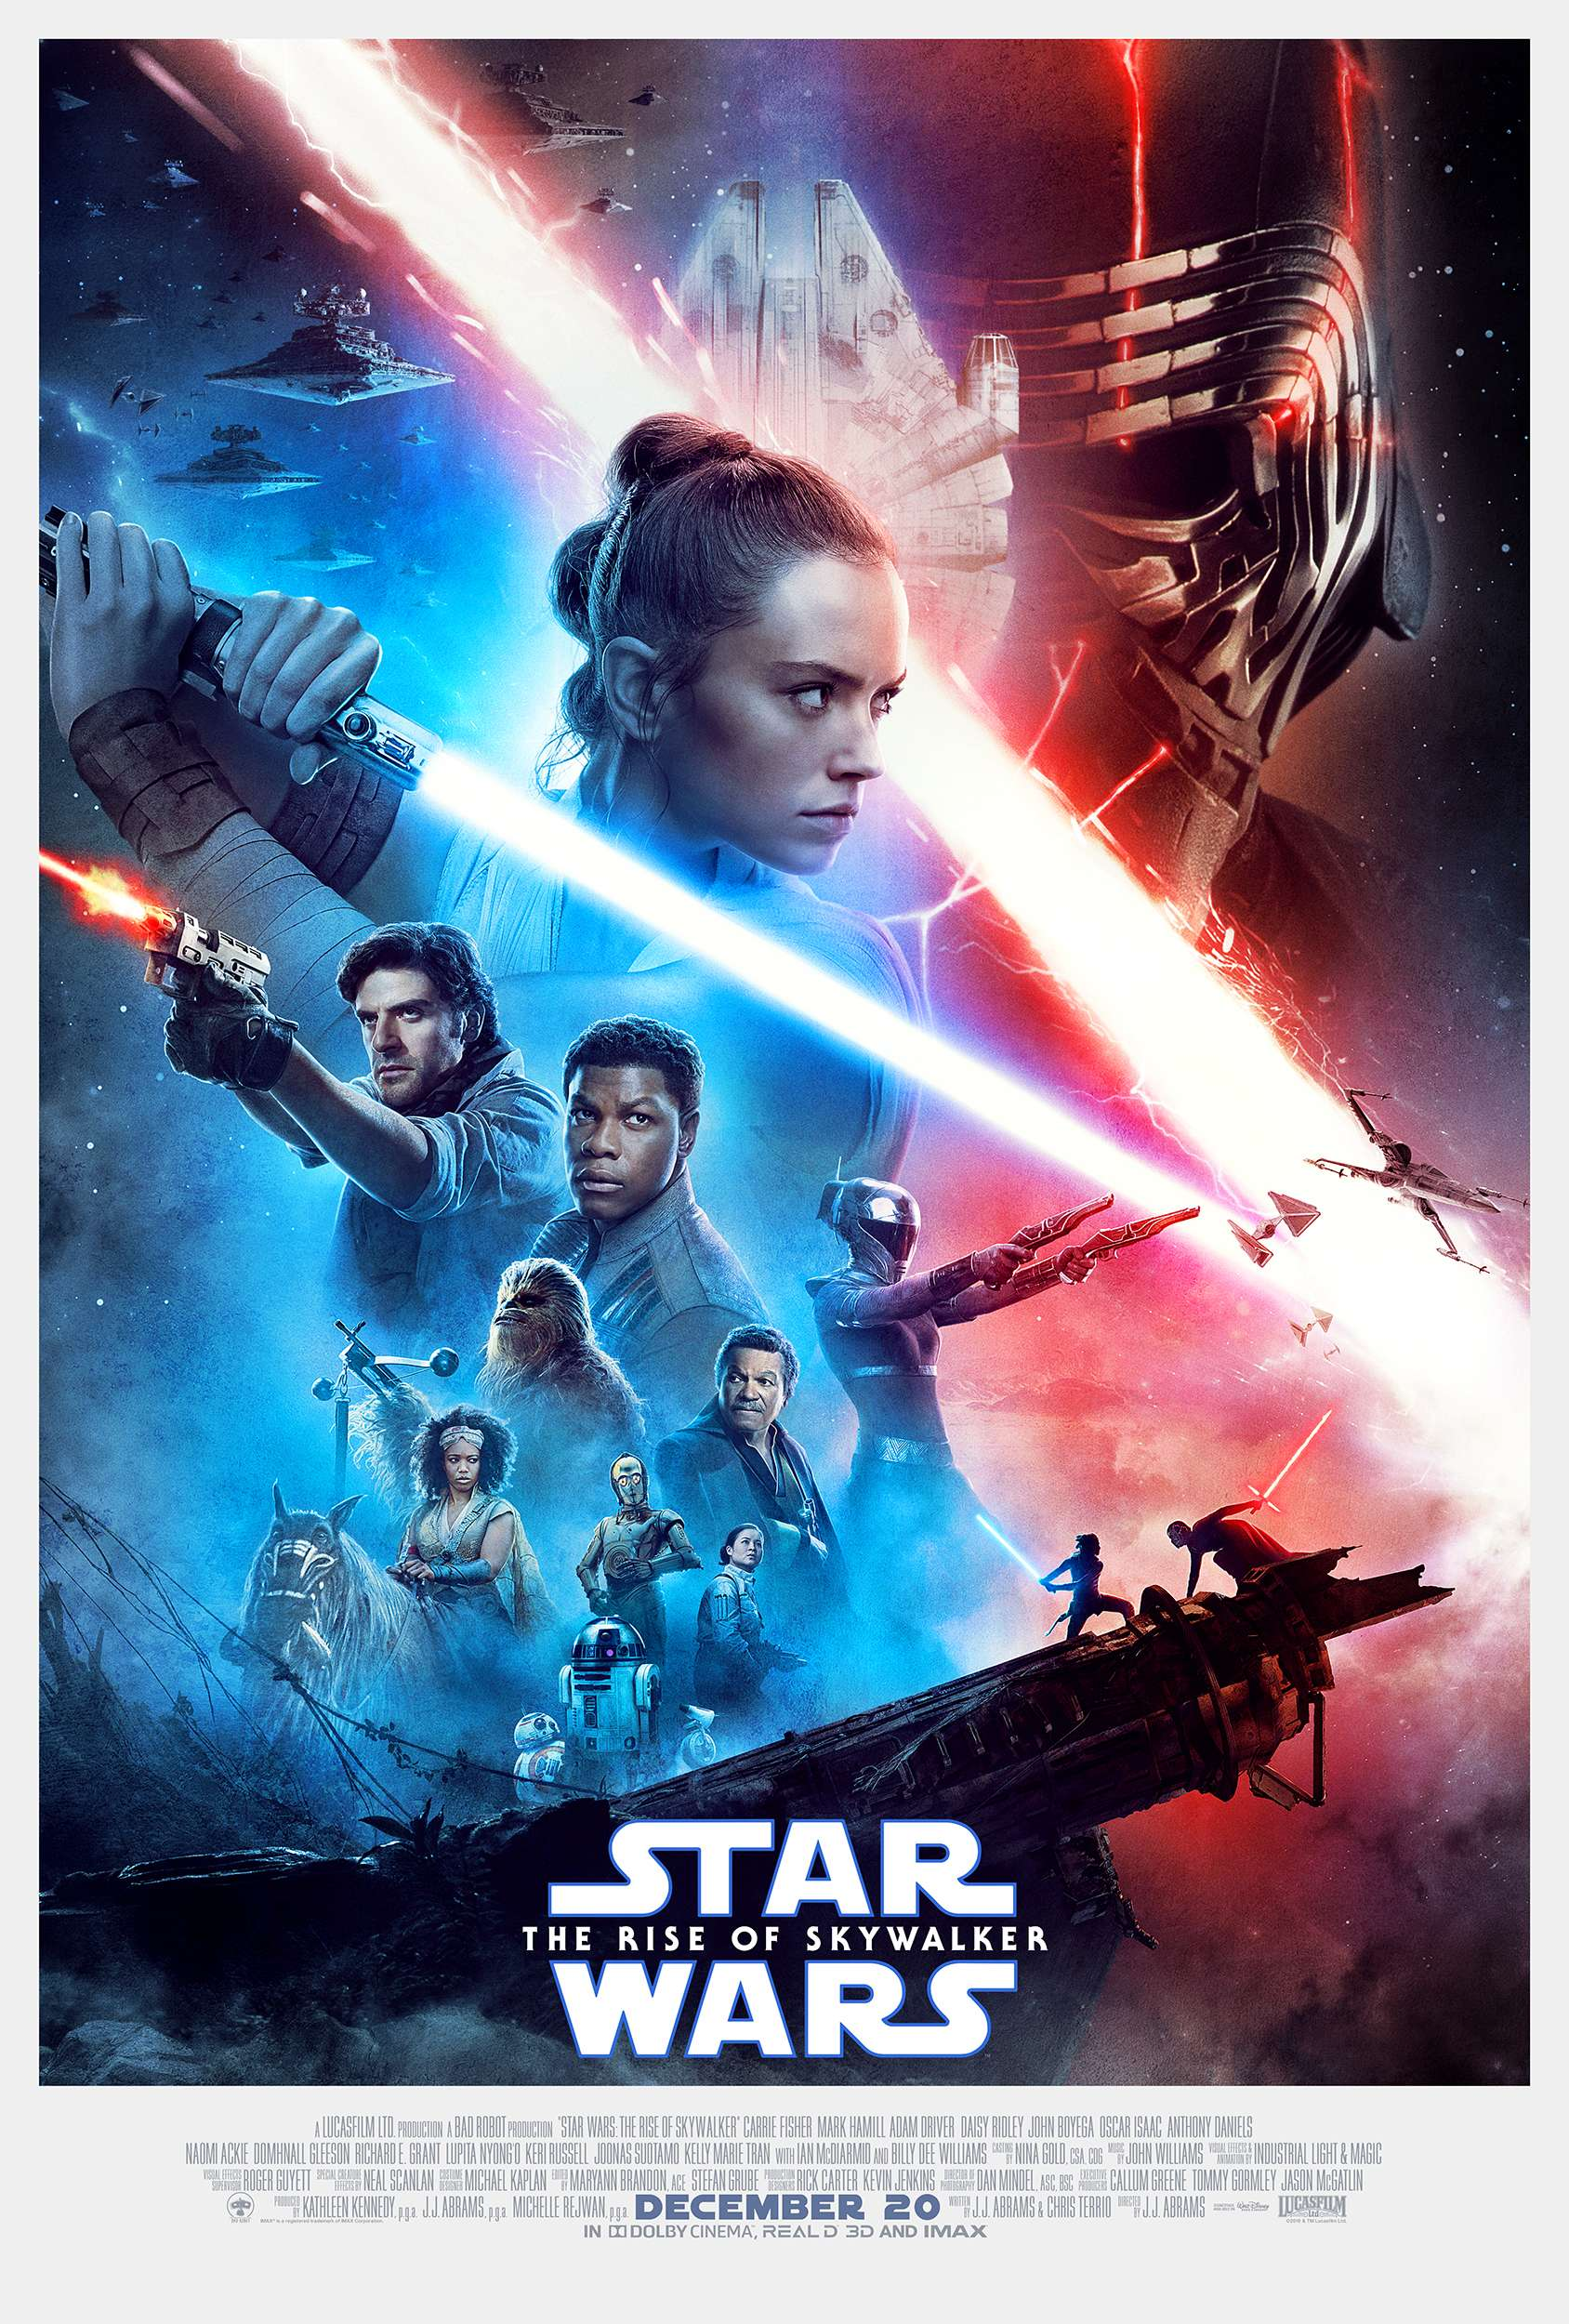 An In-Depth Look at Star Wars: The Rise of Skywalker